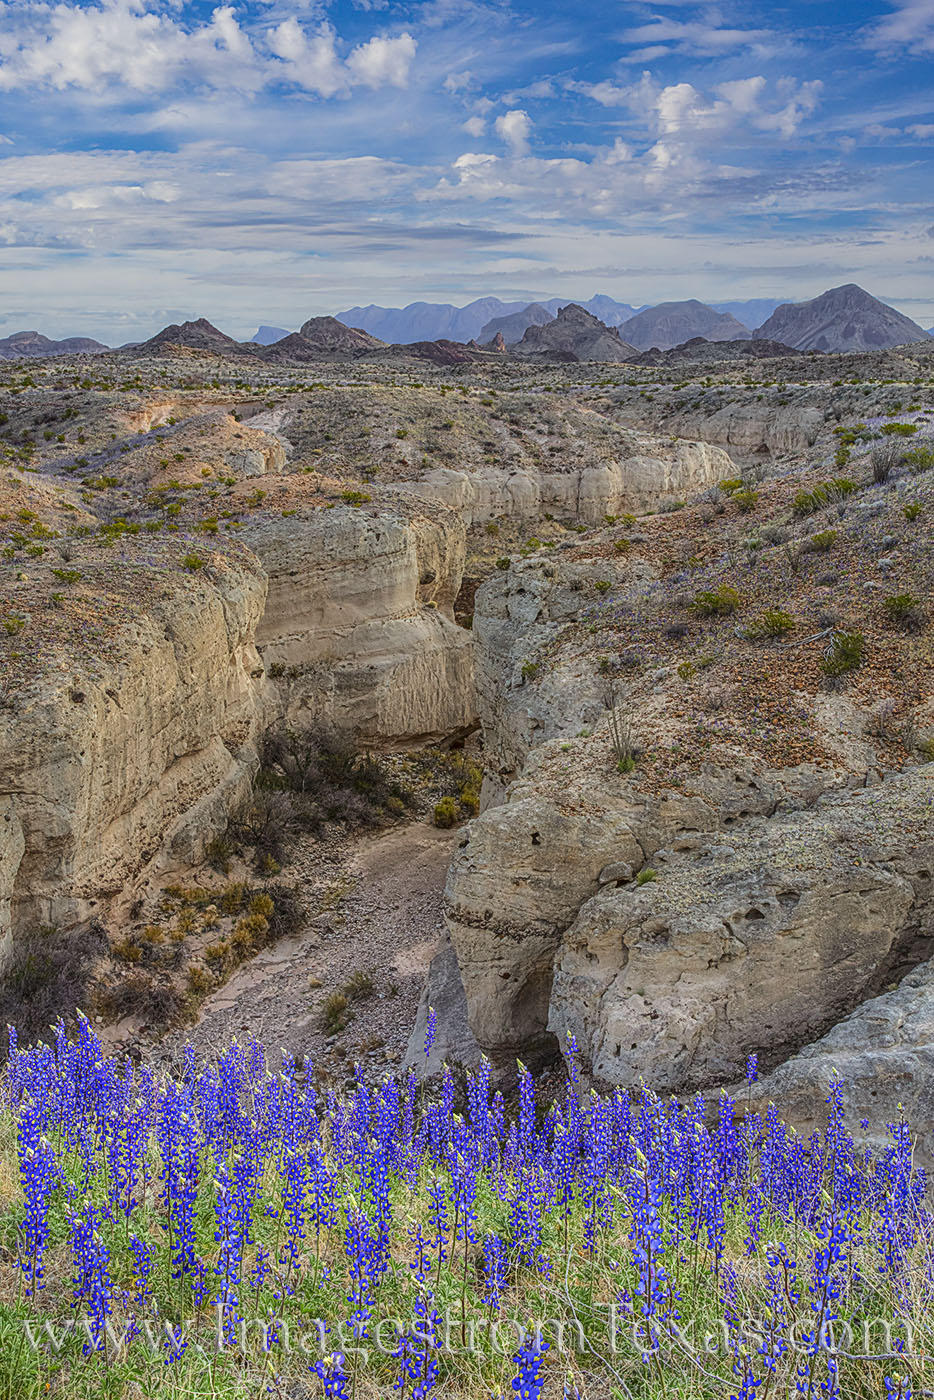 bluebonnets, tuff canyon, wildflowers, big bend national park, chihuahuan desert, texas parks, national parks, ross maxwell, canyon, western slope, photo